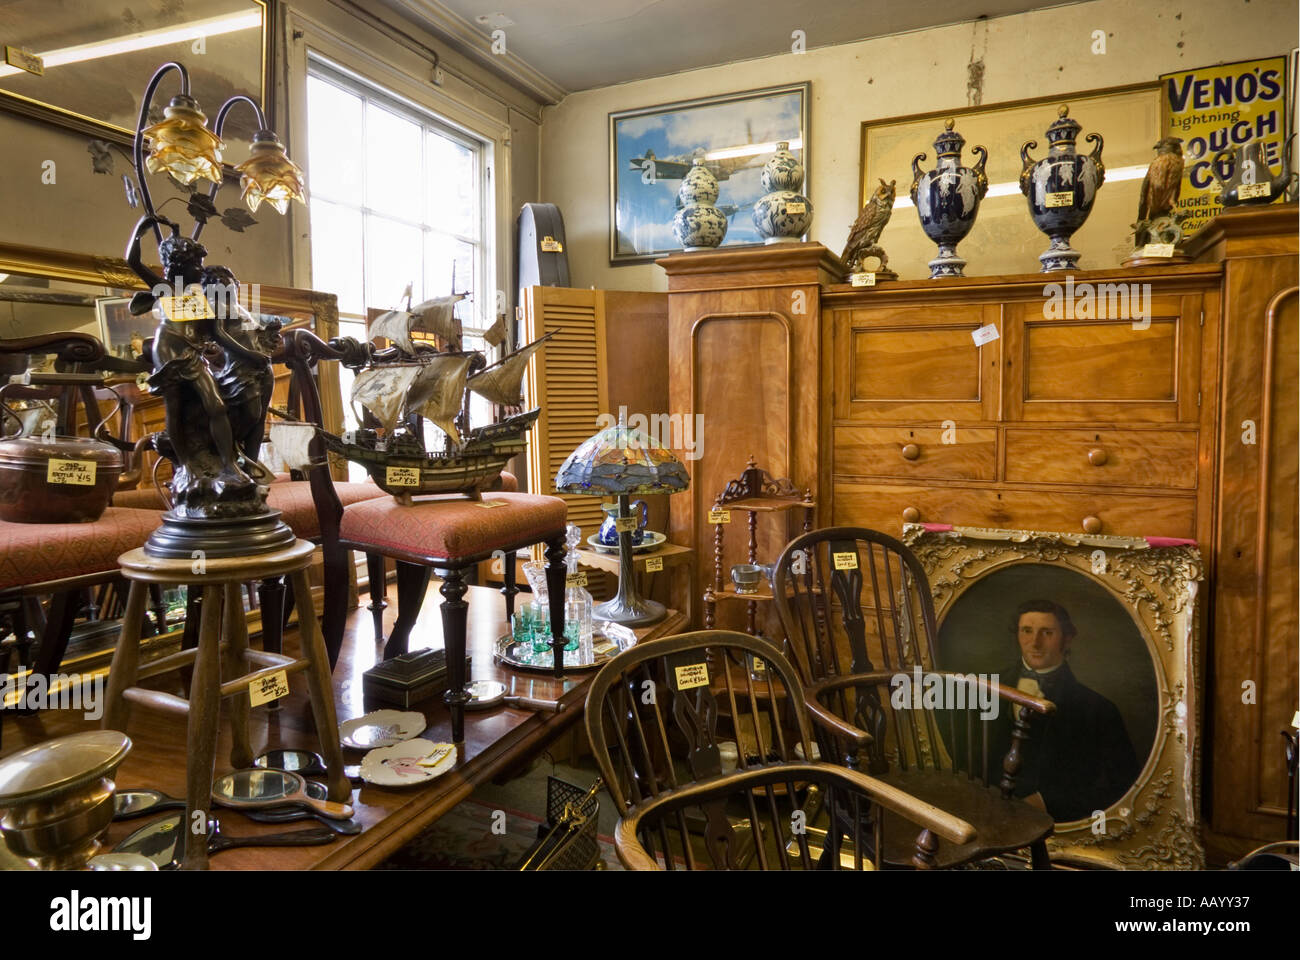 Antiques shop store interior England UK - selling antique and vintage furniture and ornaments - Stock Image